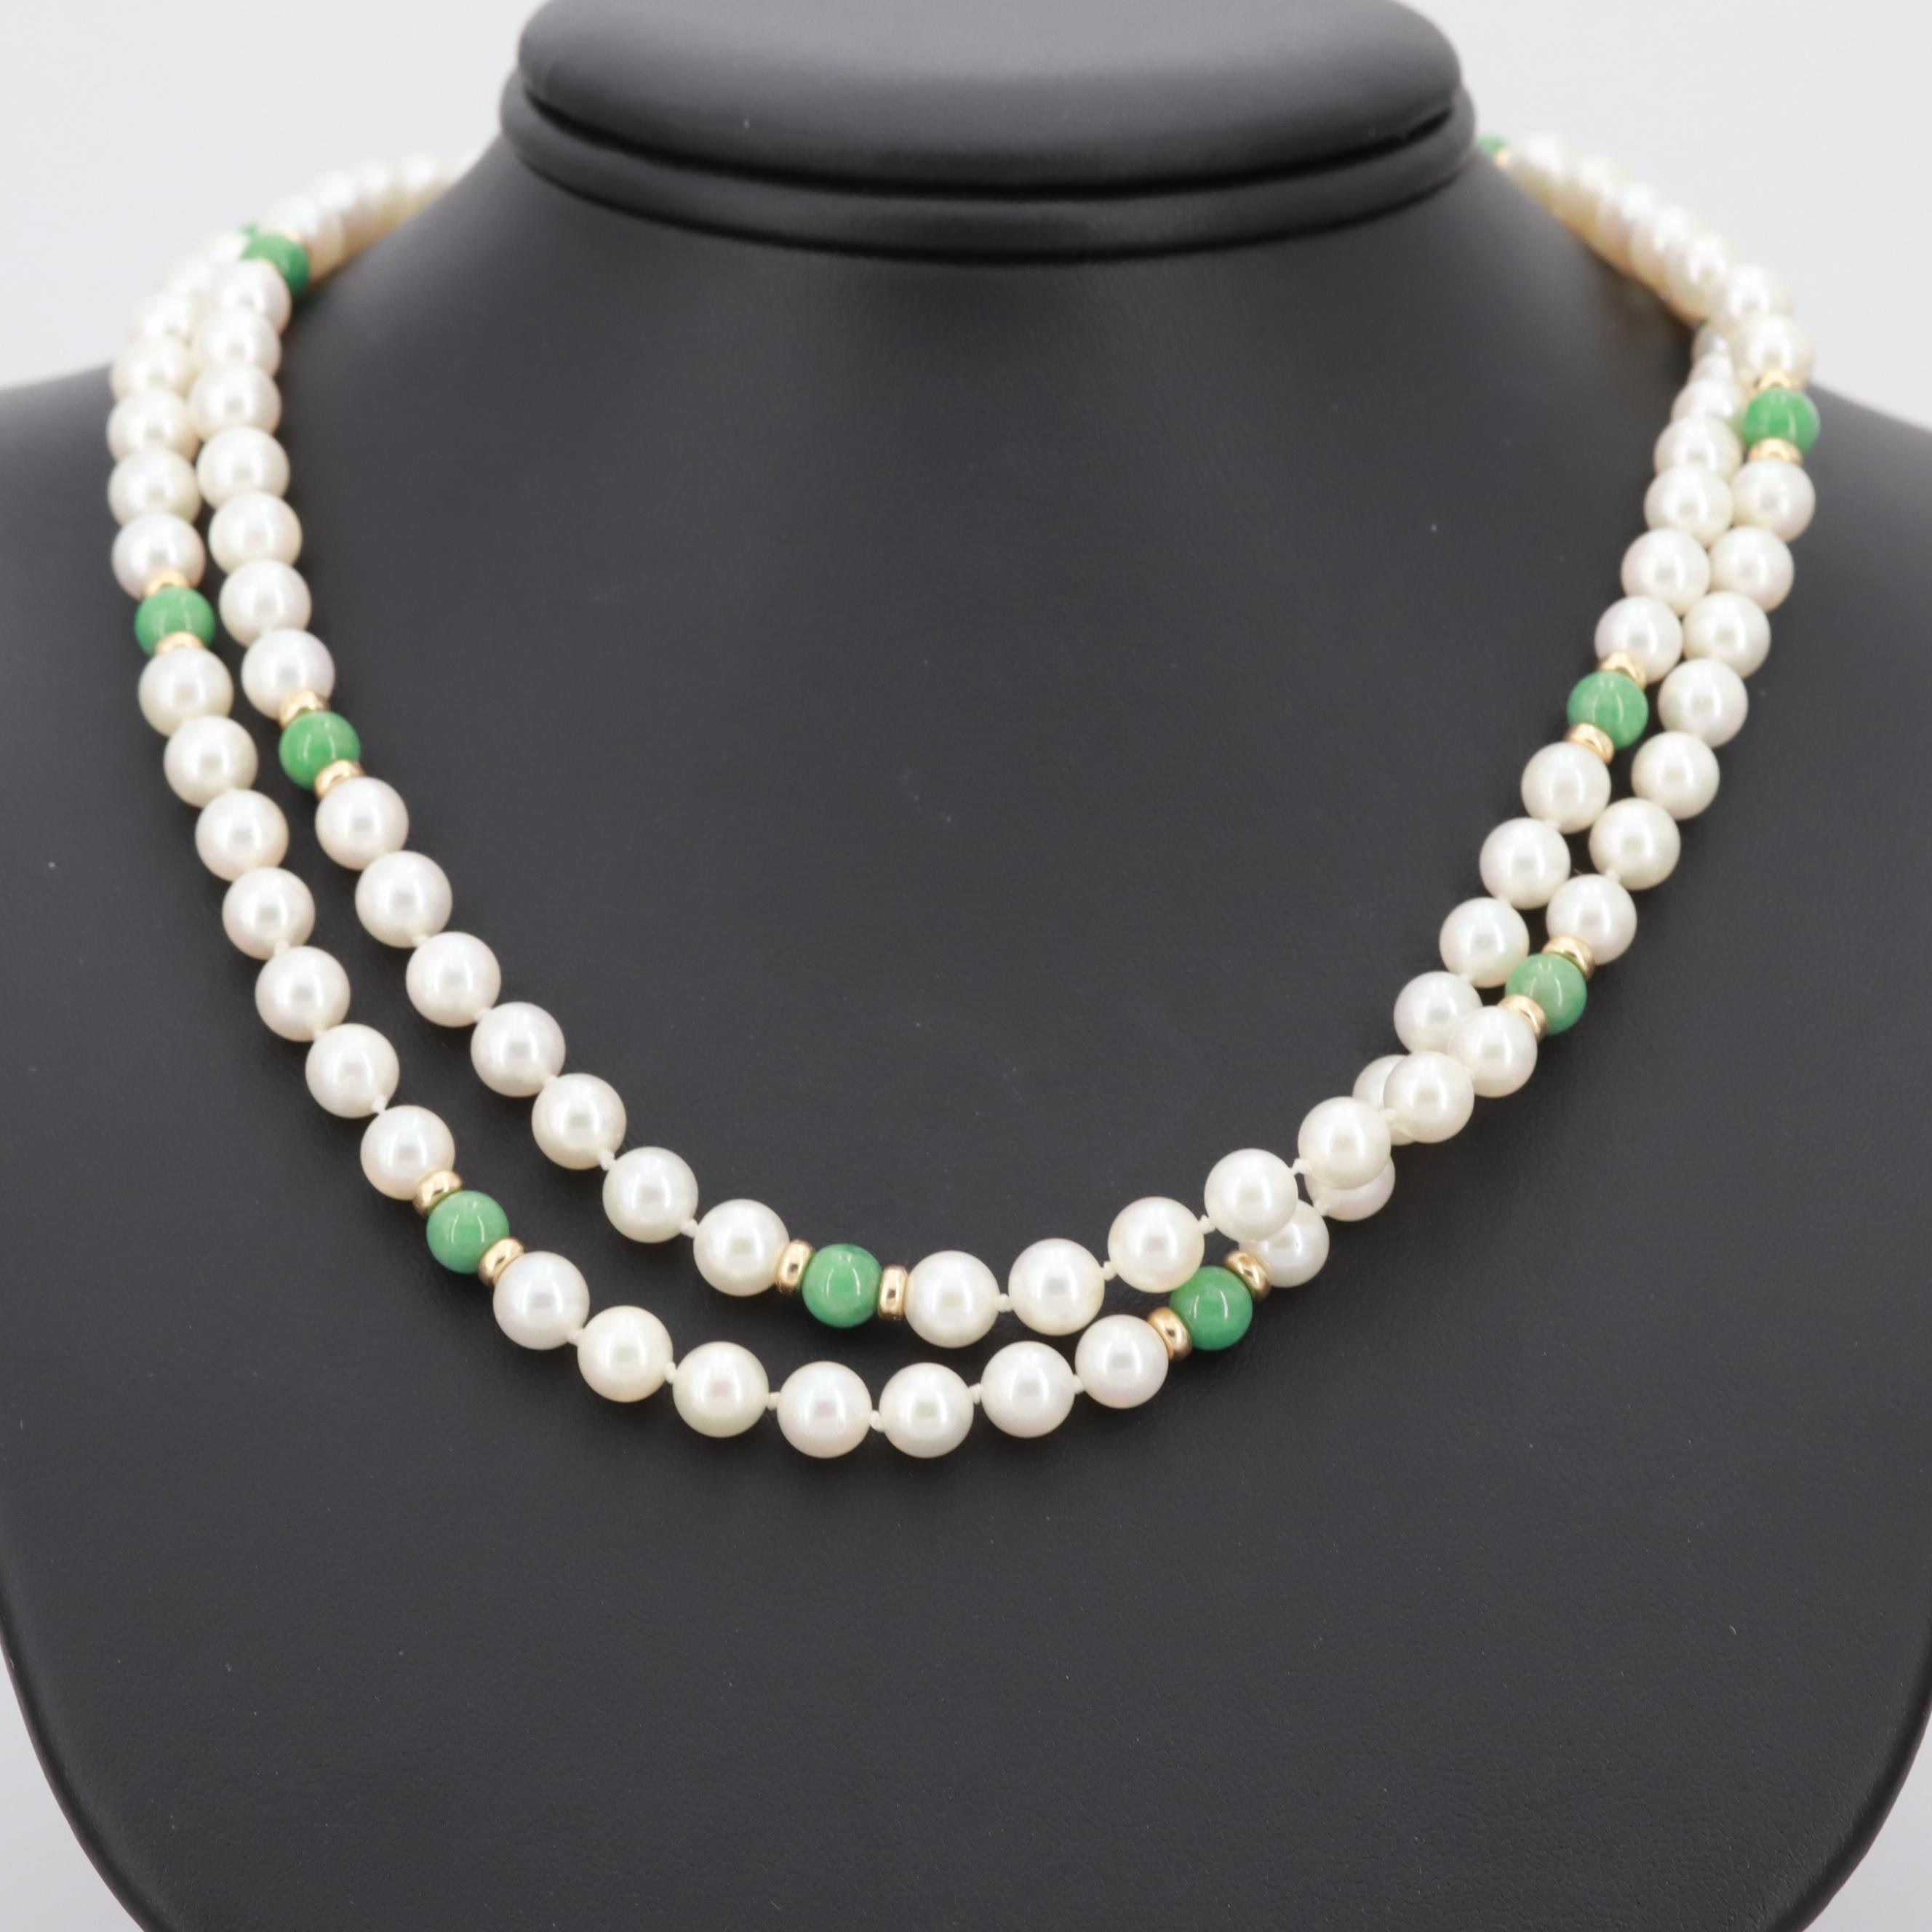 14K Yellow Gold Cultured Pearl and Nephrite Necklace